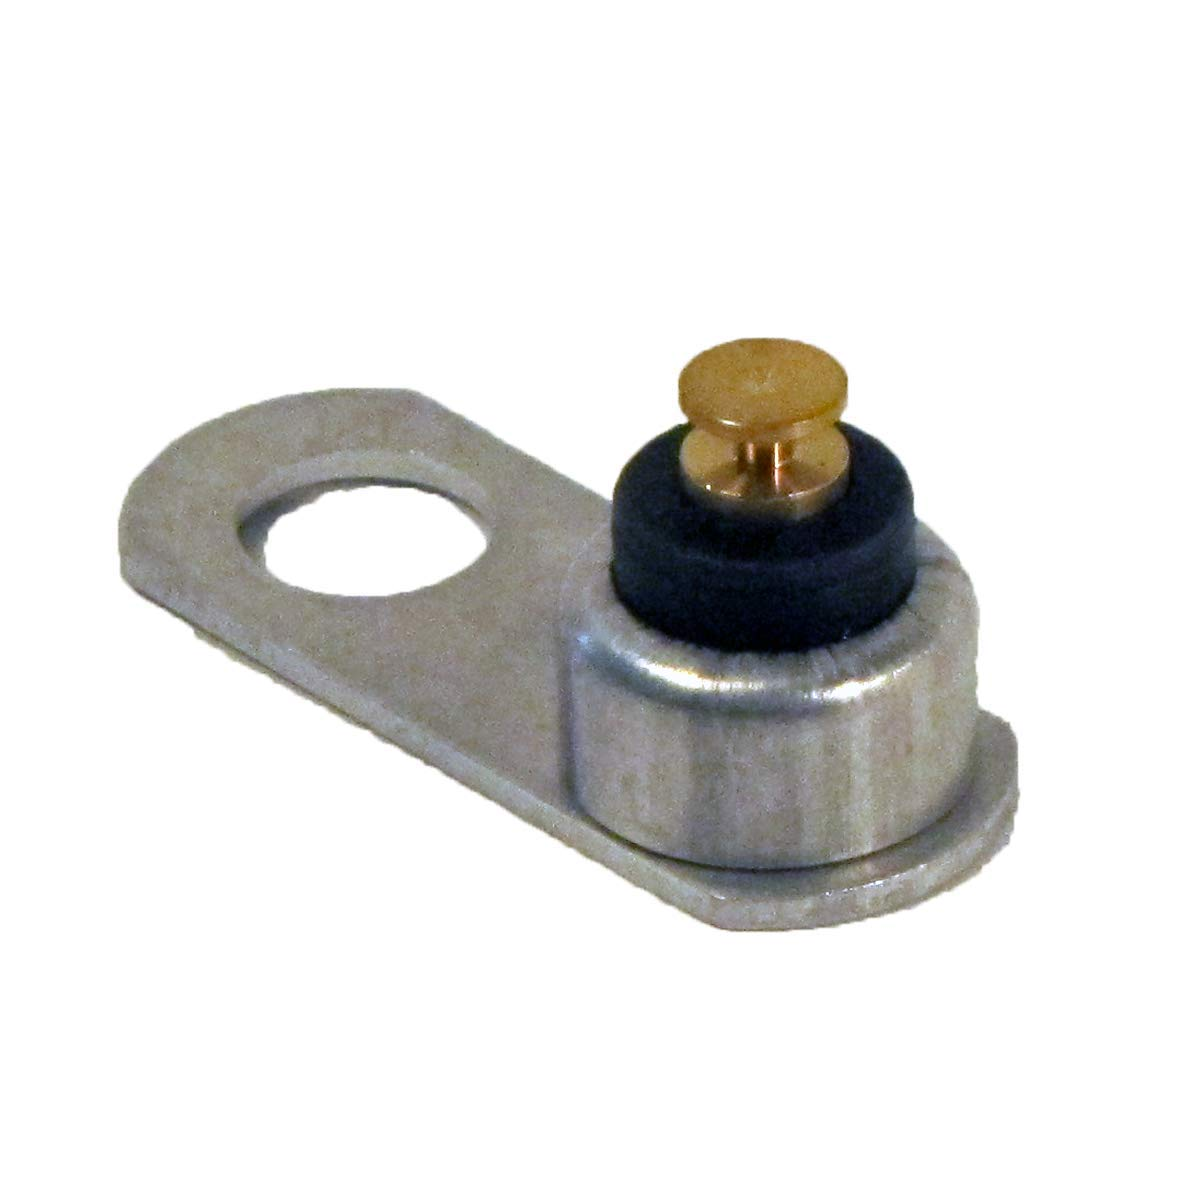 CYLINDER HEAD TEMP SENDER #TS5026 for Faria guages